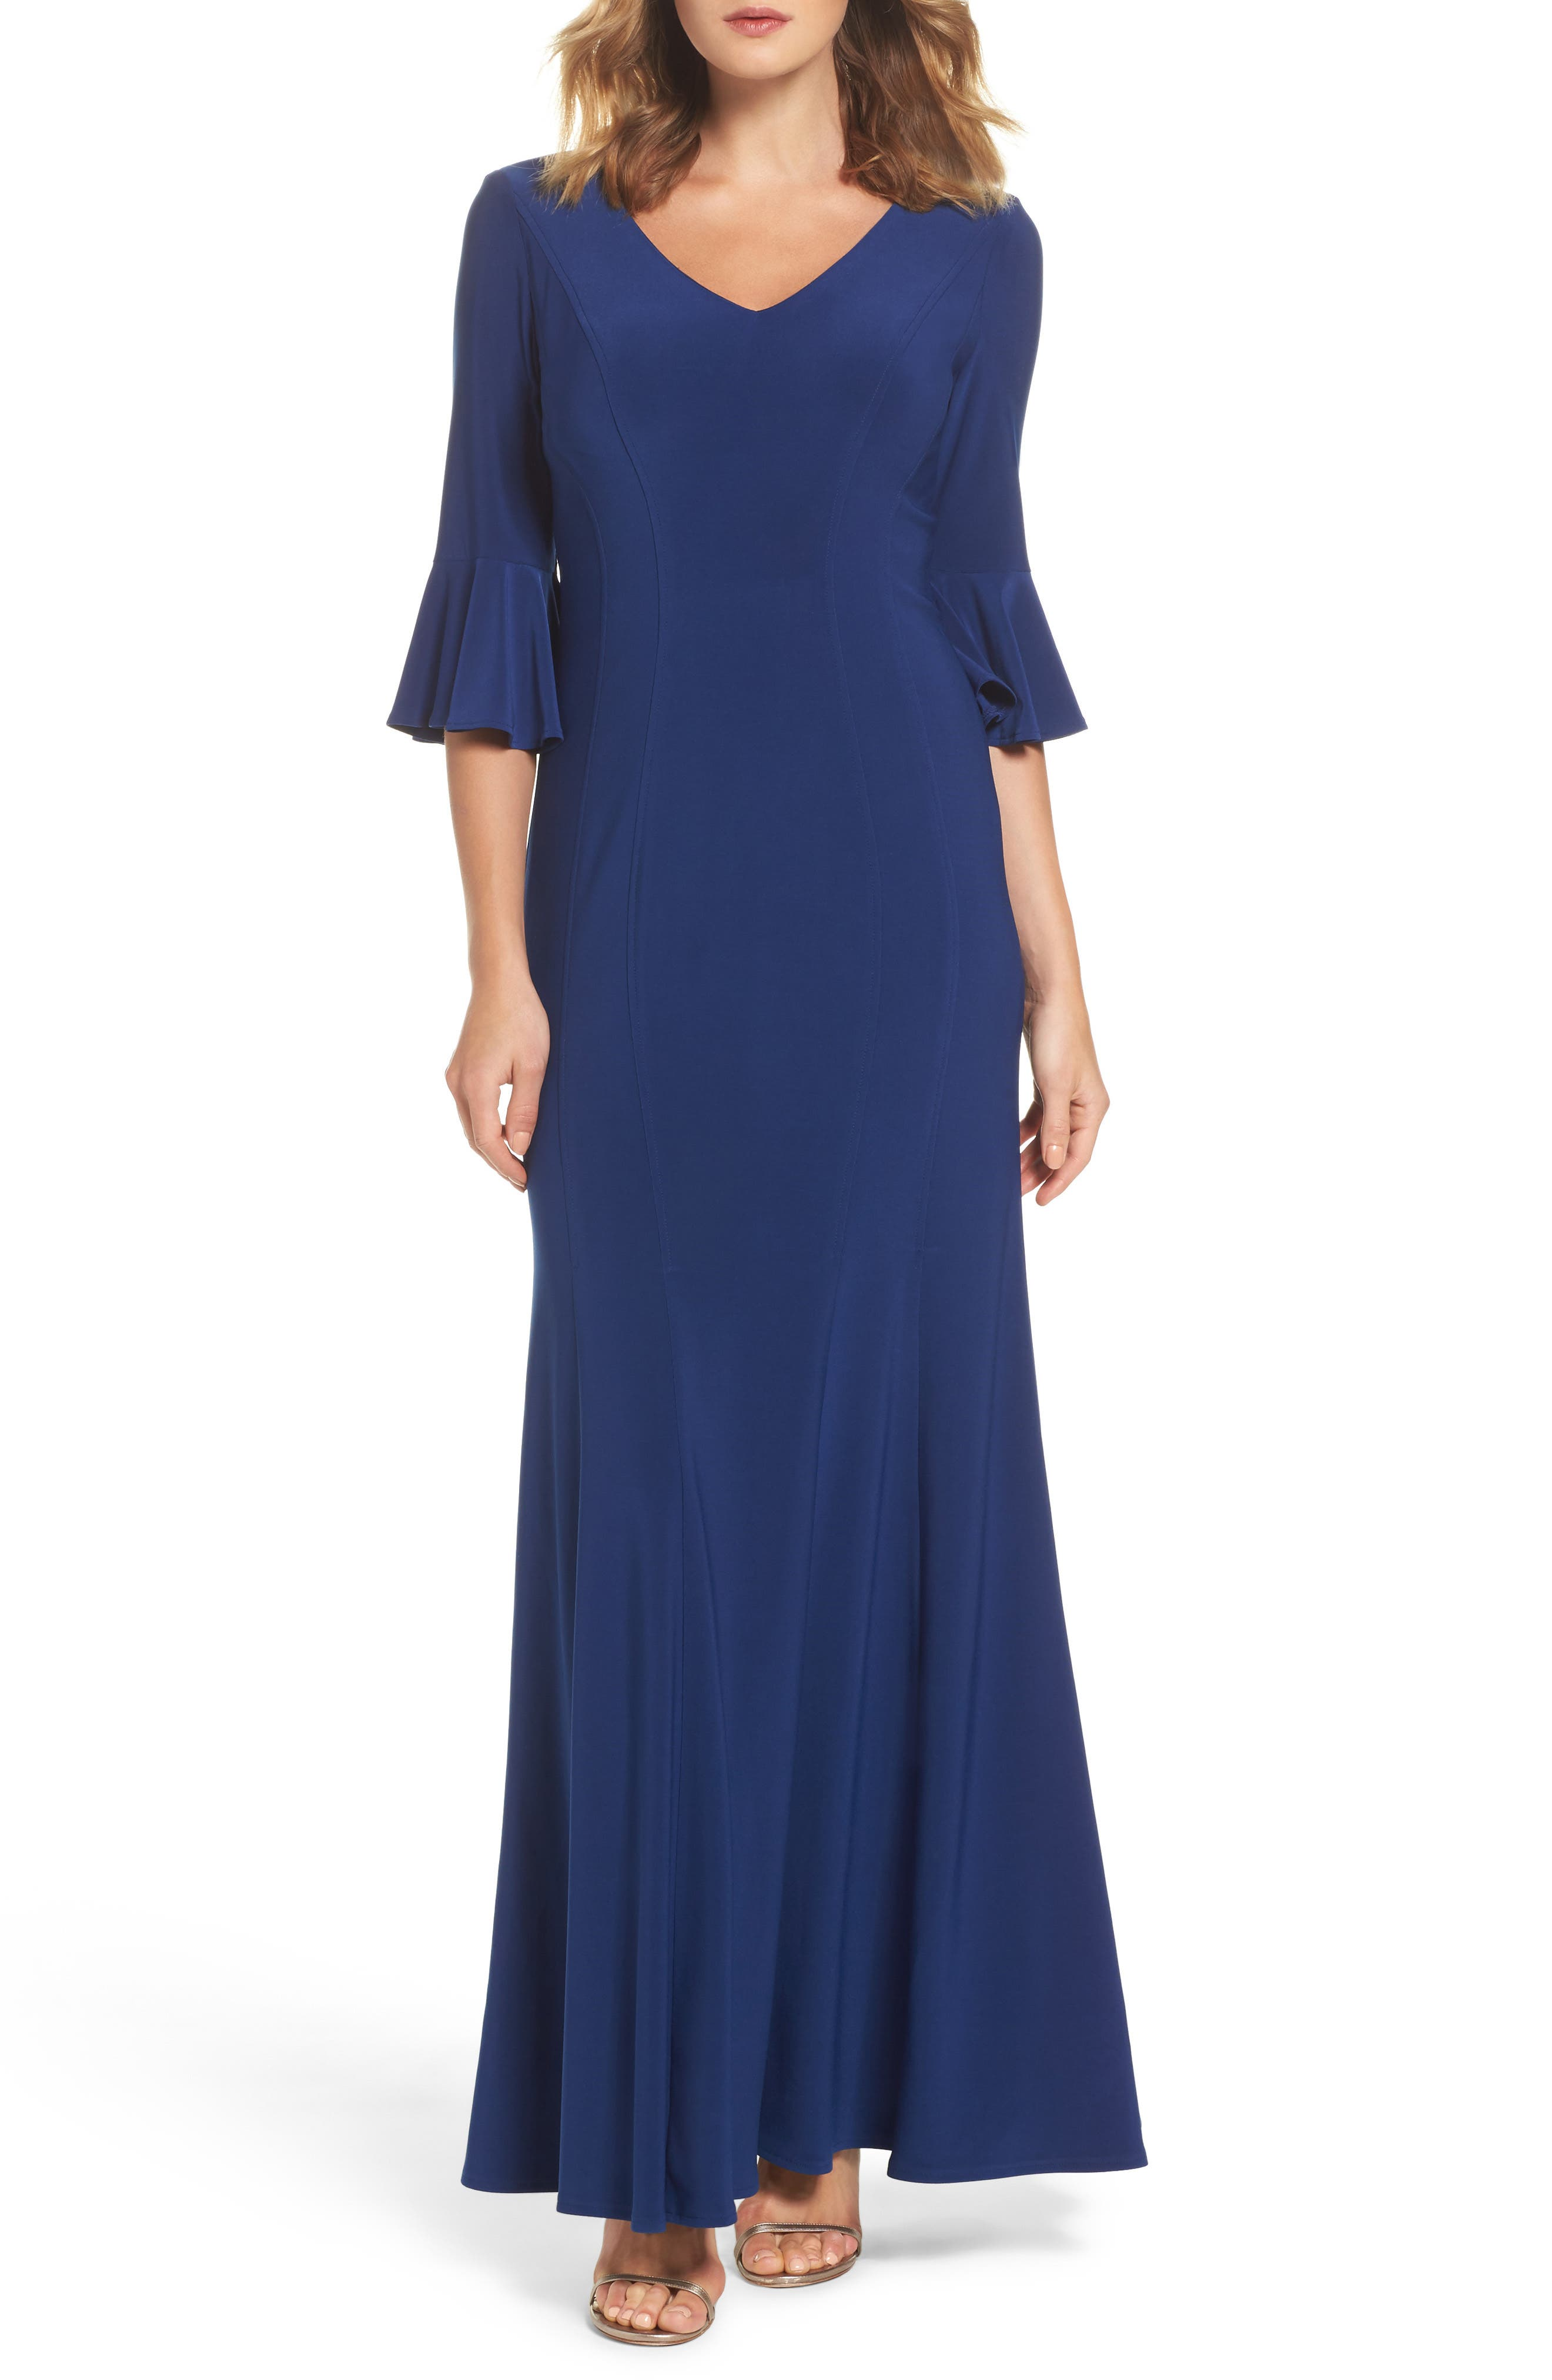 Alternate Image 1 Selected - Alex Evenings Fit & Flare Gown